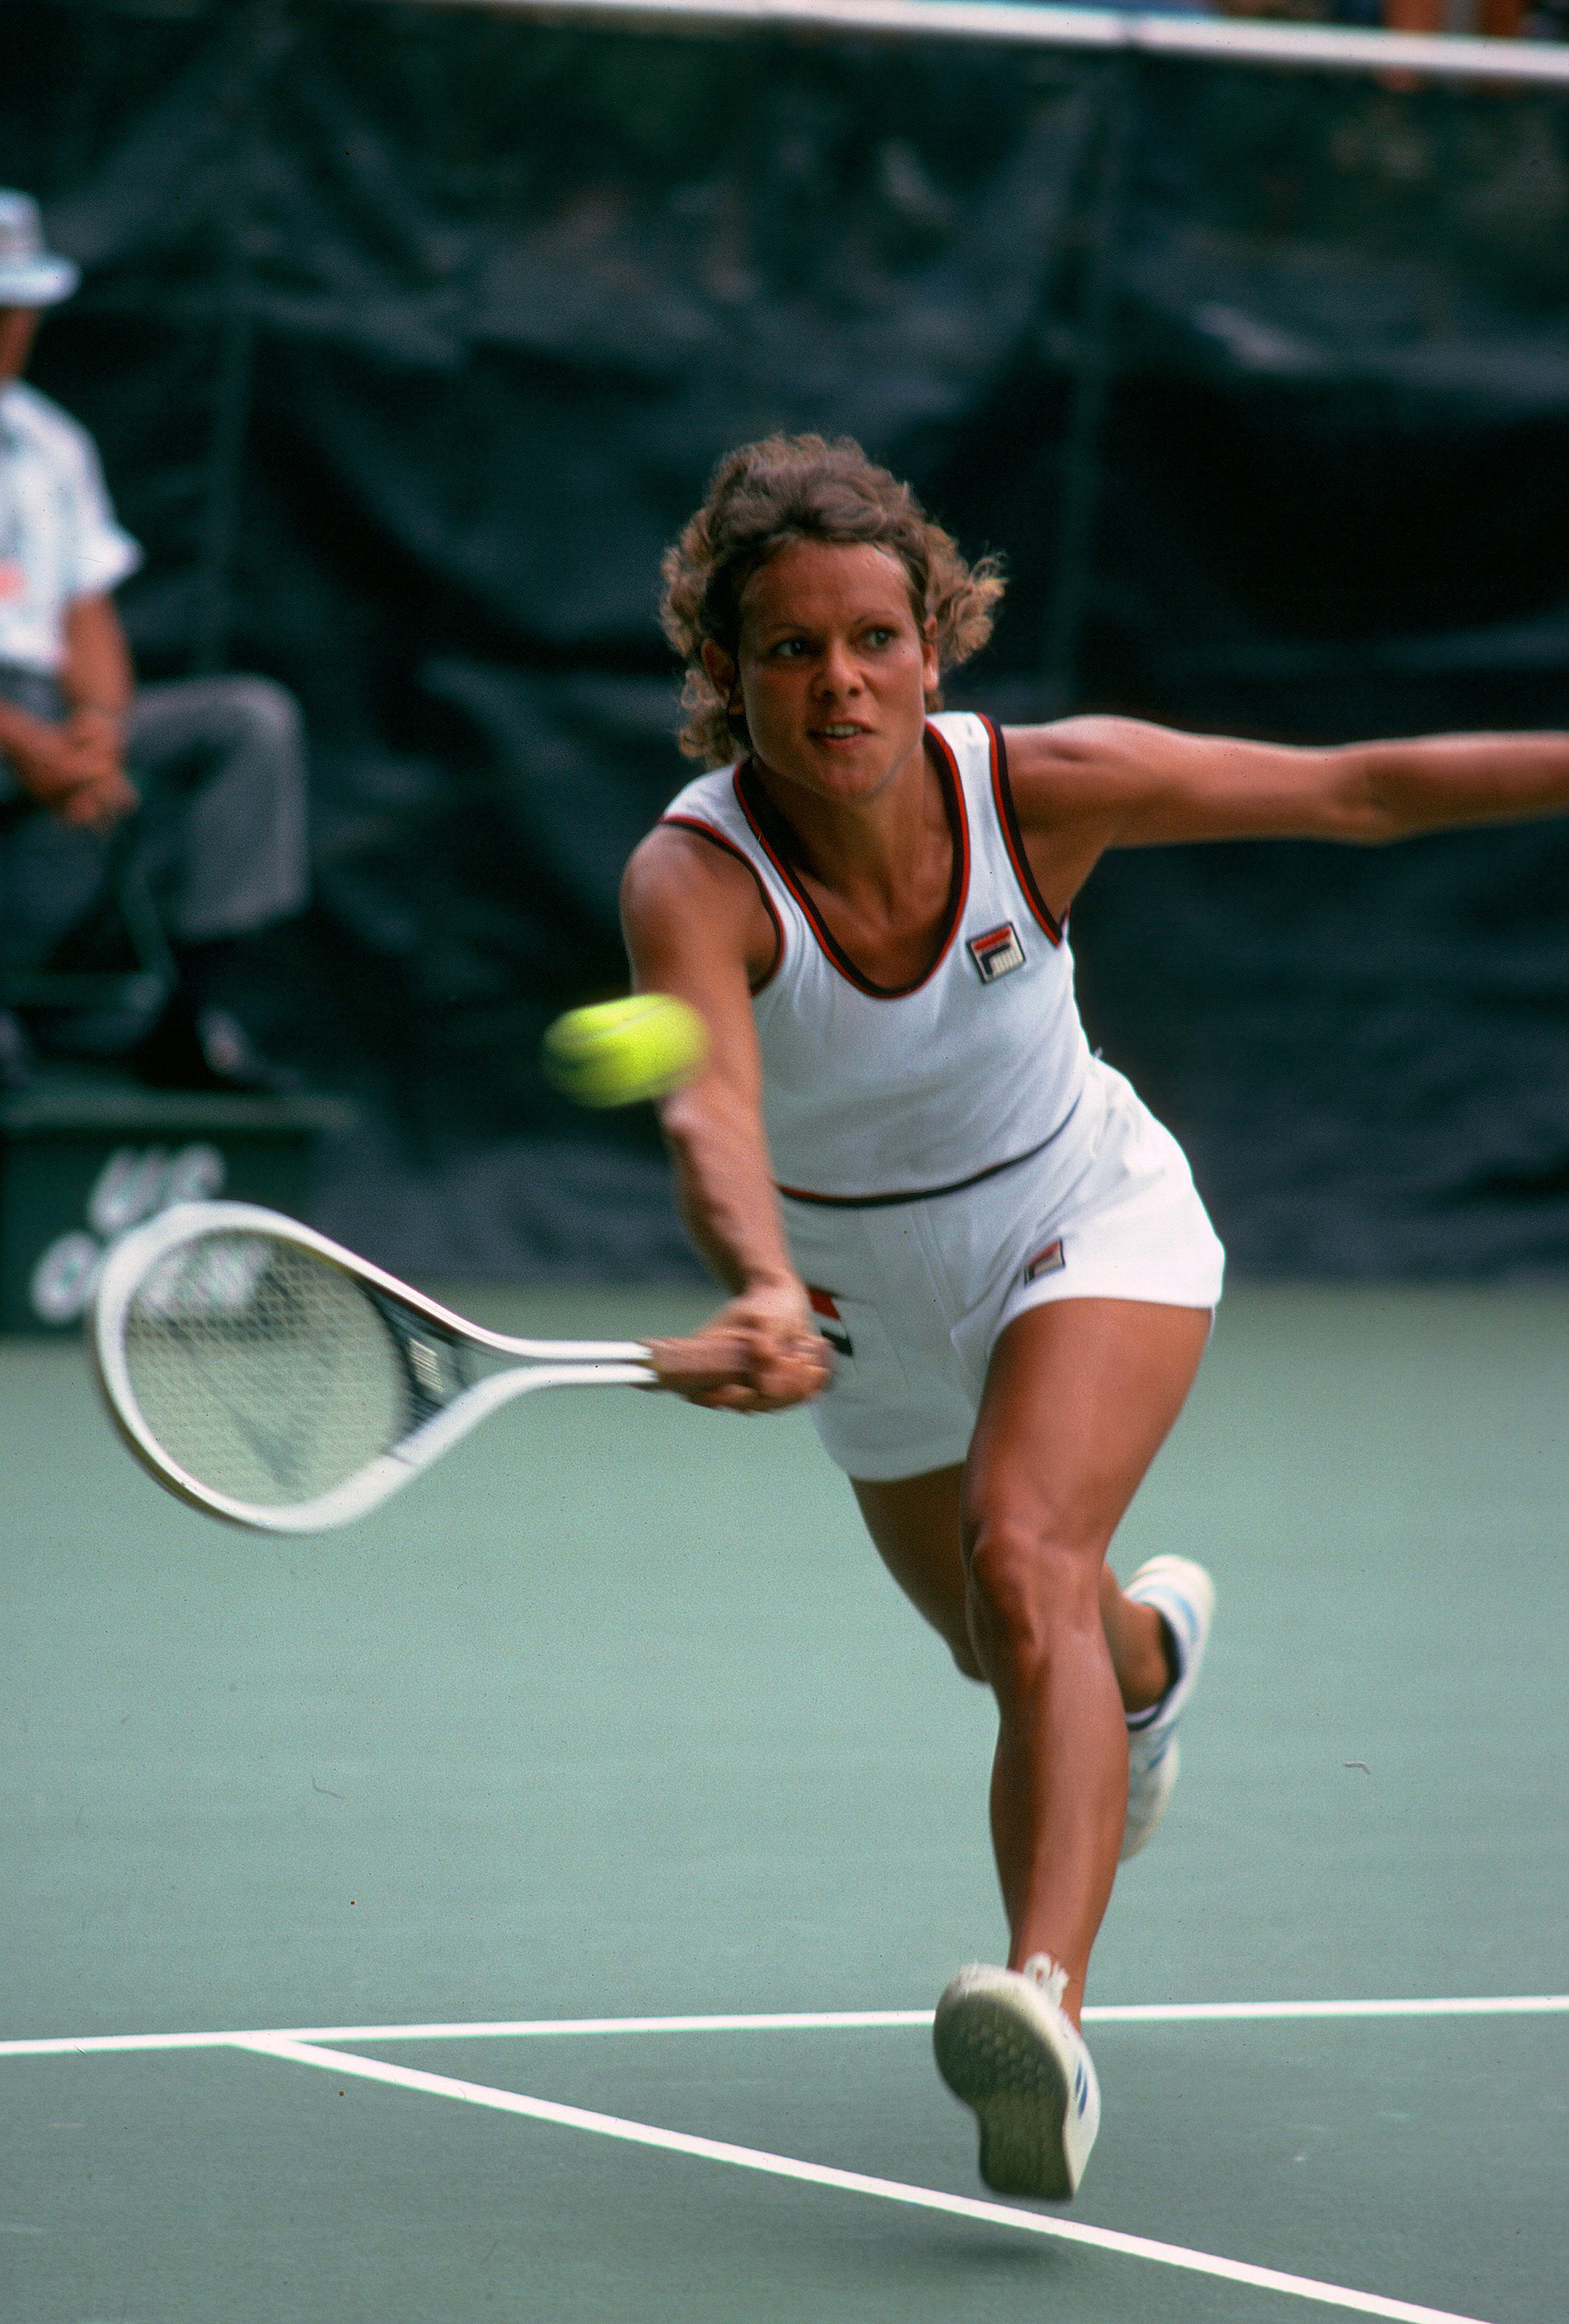 <b>Evonne Goolagong</b> The daughter of a poor Aboriginal sheep shearer, Evonne Goolagong shot down the notion that tennis stars had to be groomed at the country club. Born in 1951 — 16 years before Australia even recognized Aborigines in its census — she took up the sport after an encouraging neighbor spotted her peering through the fence at a local court.